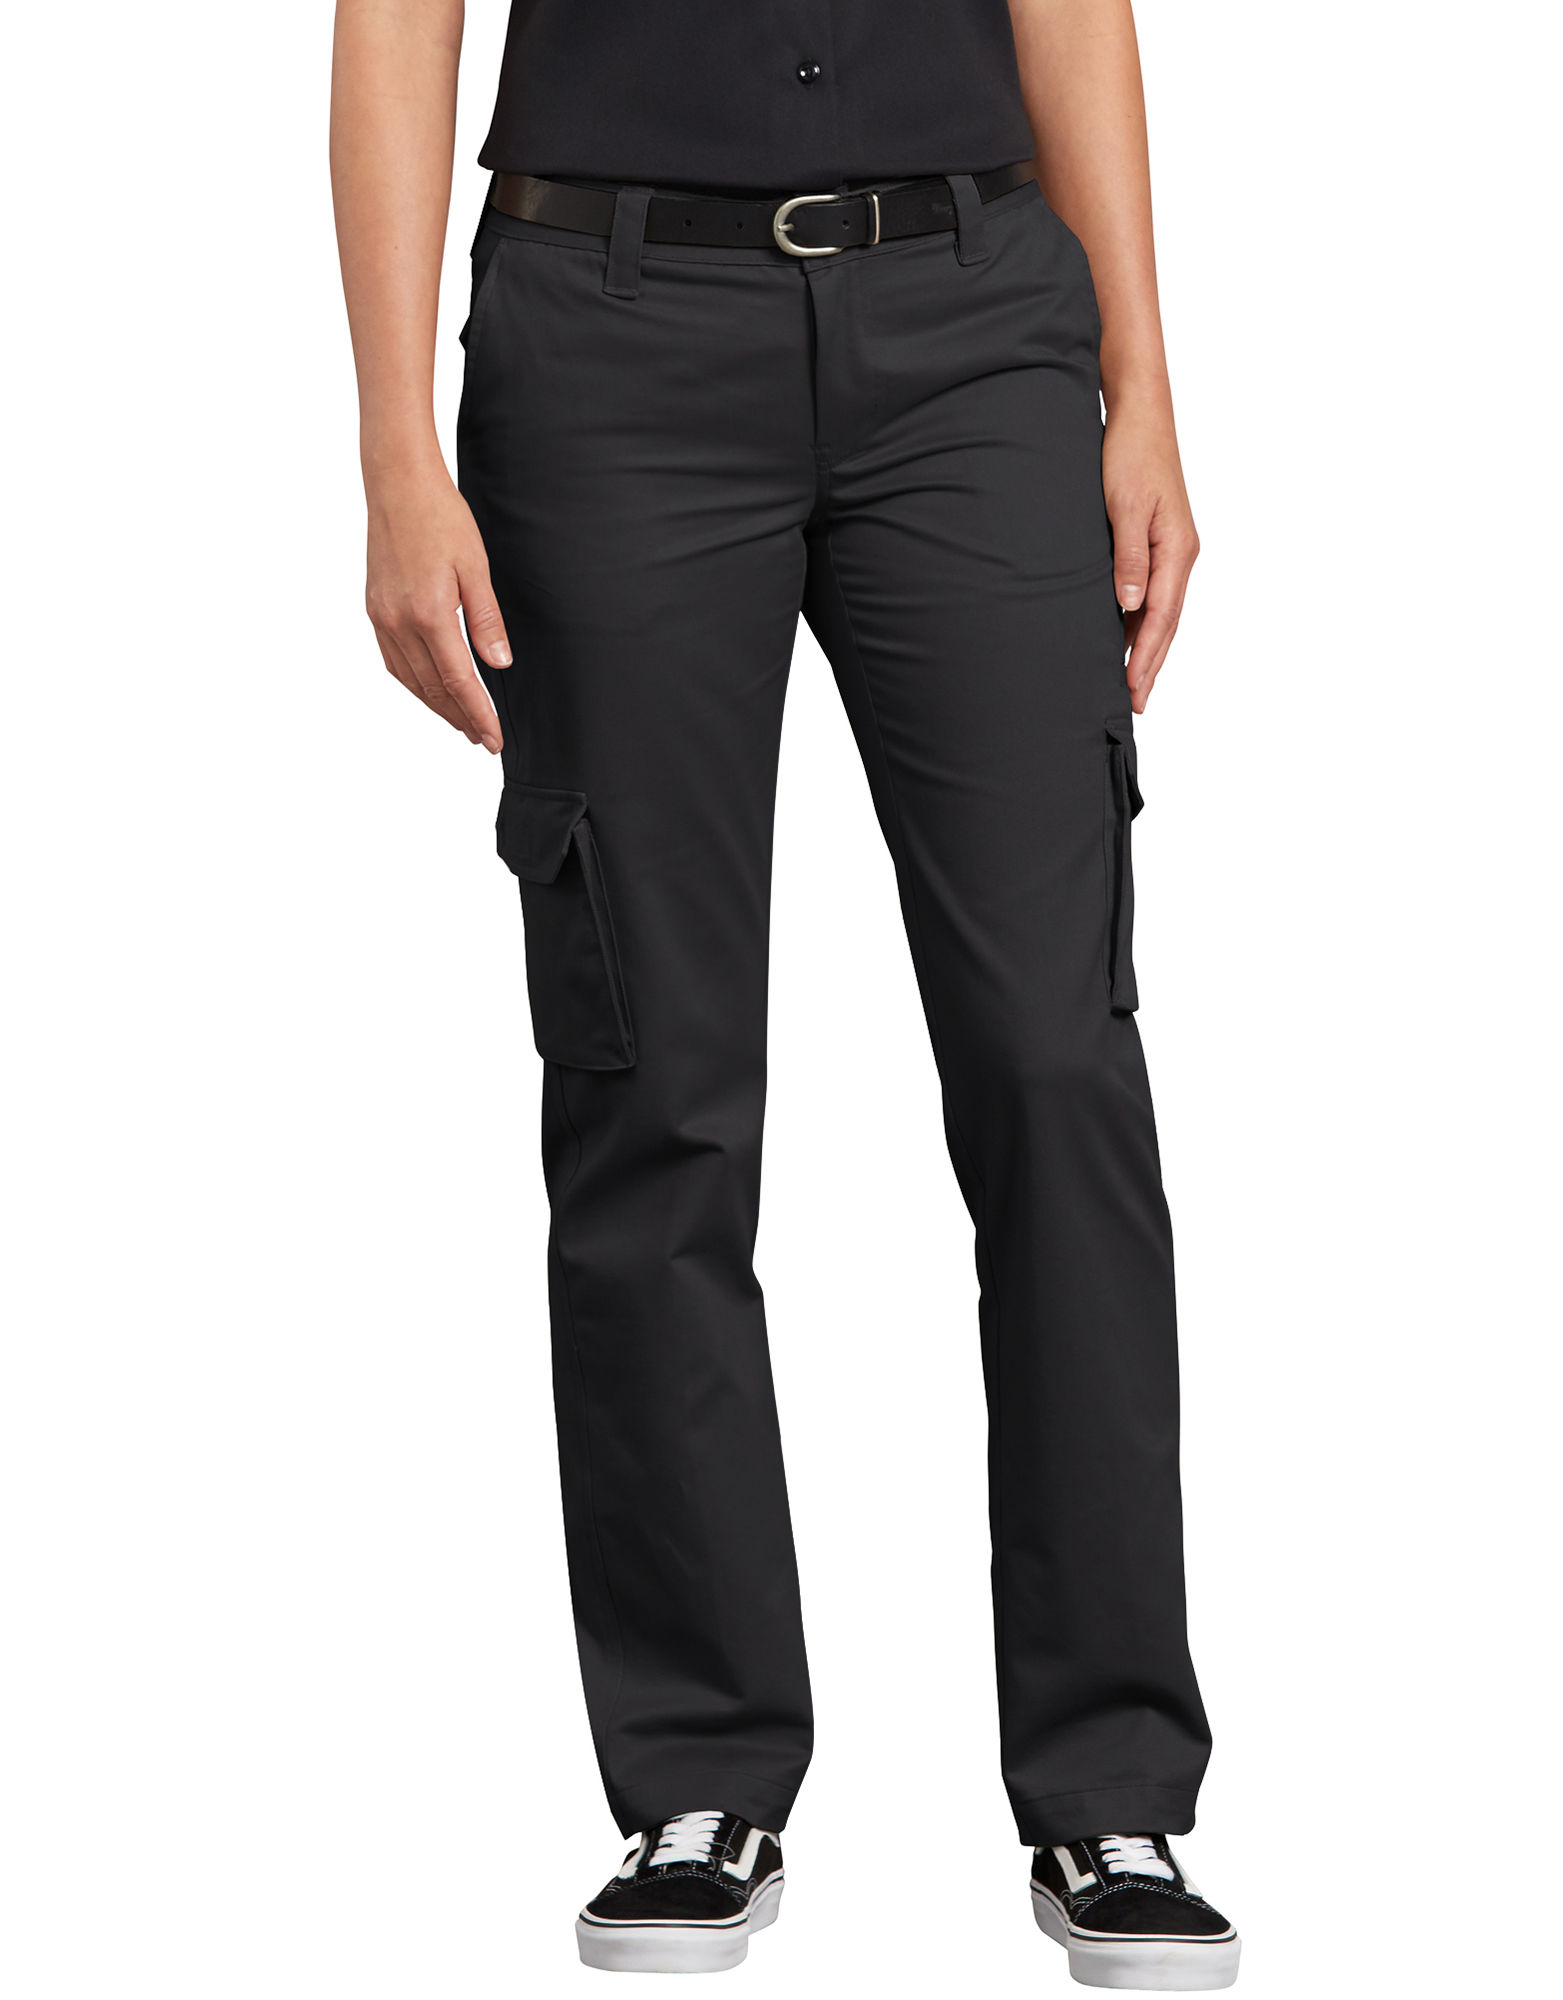 Women's Stretch Cargo Pants | Women's Pants | Dickies